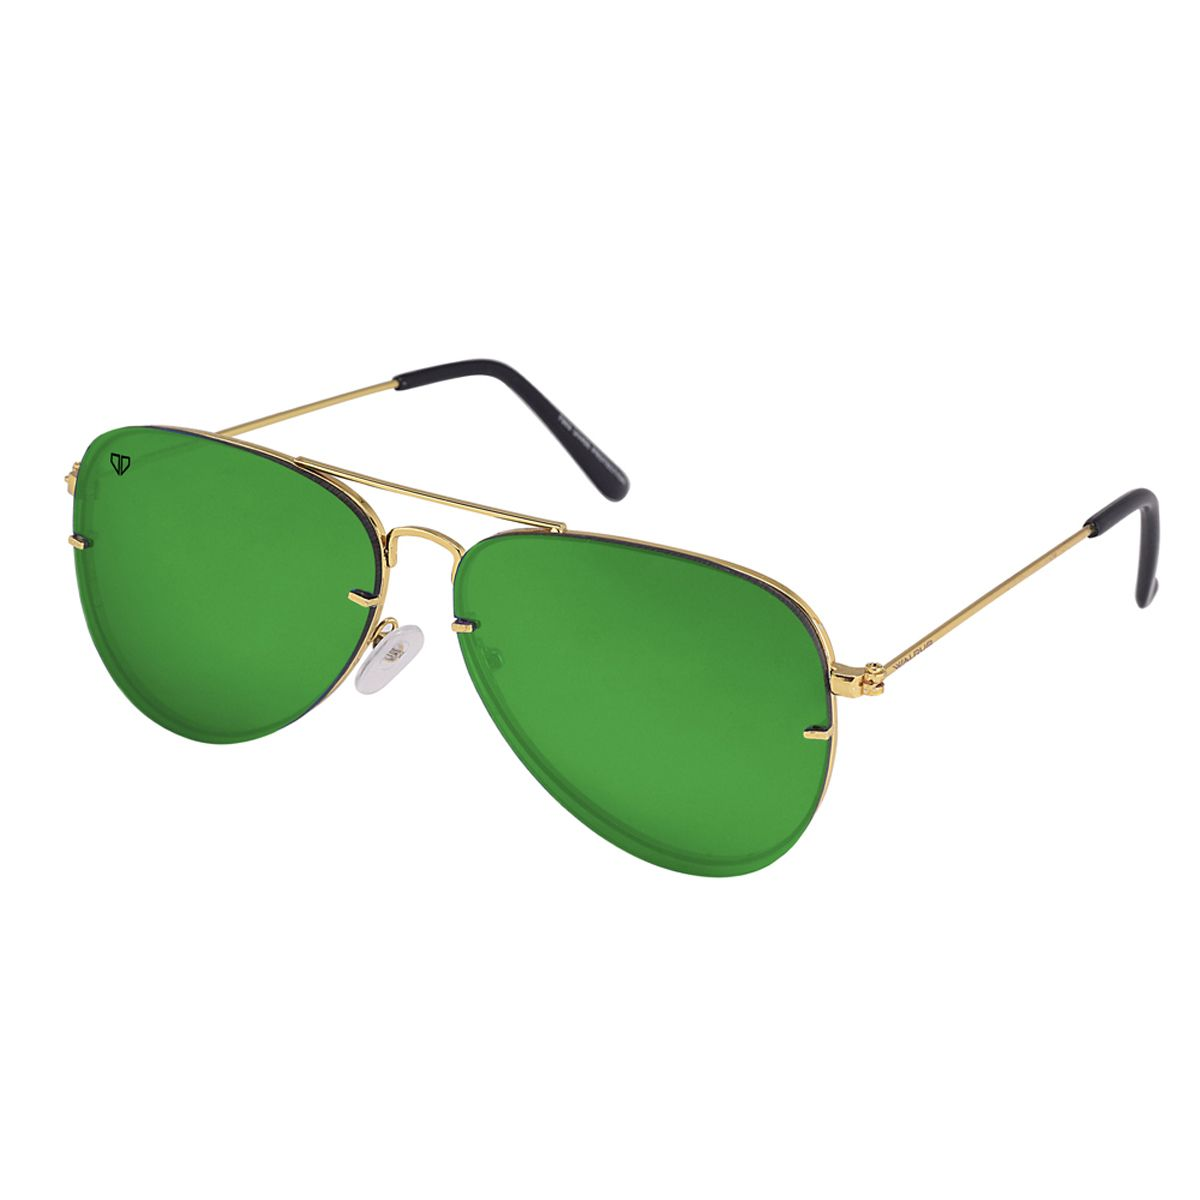 Walrus Noah Green Color Unisex Aviator Sunglass- WS-NOAH-040606